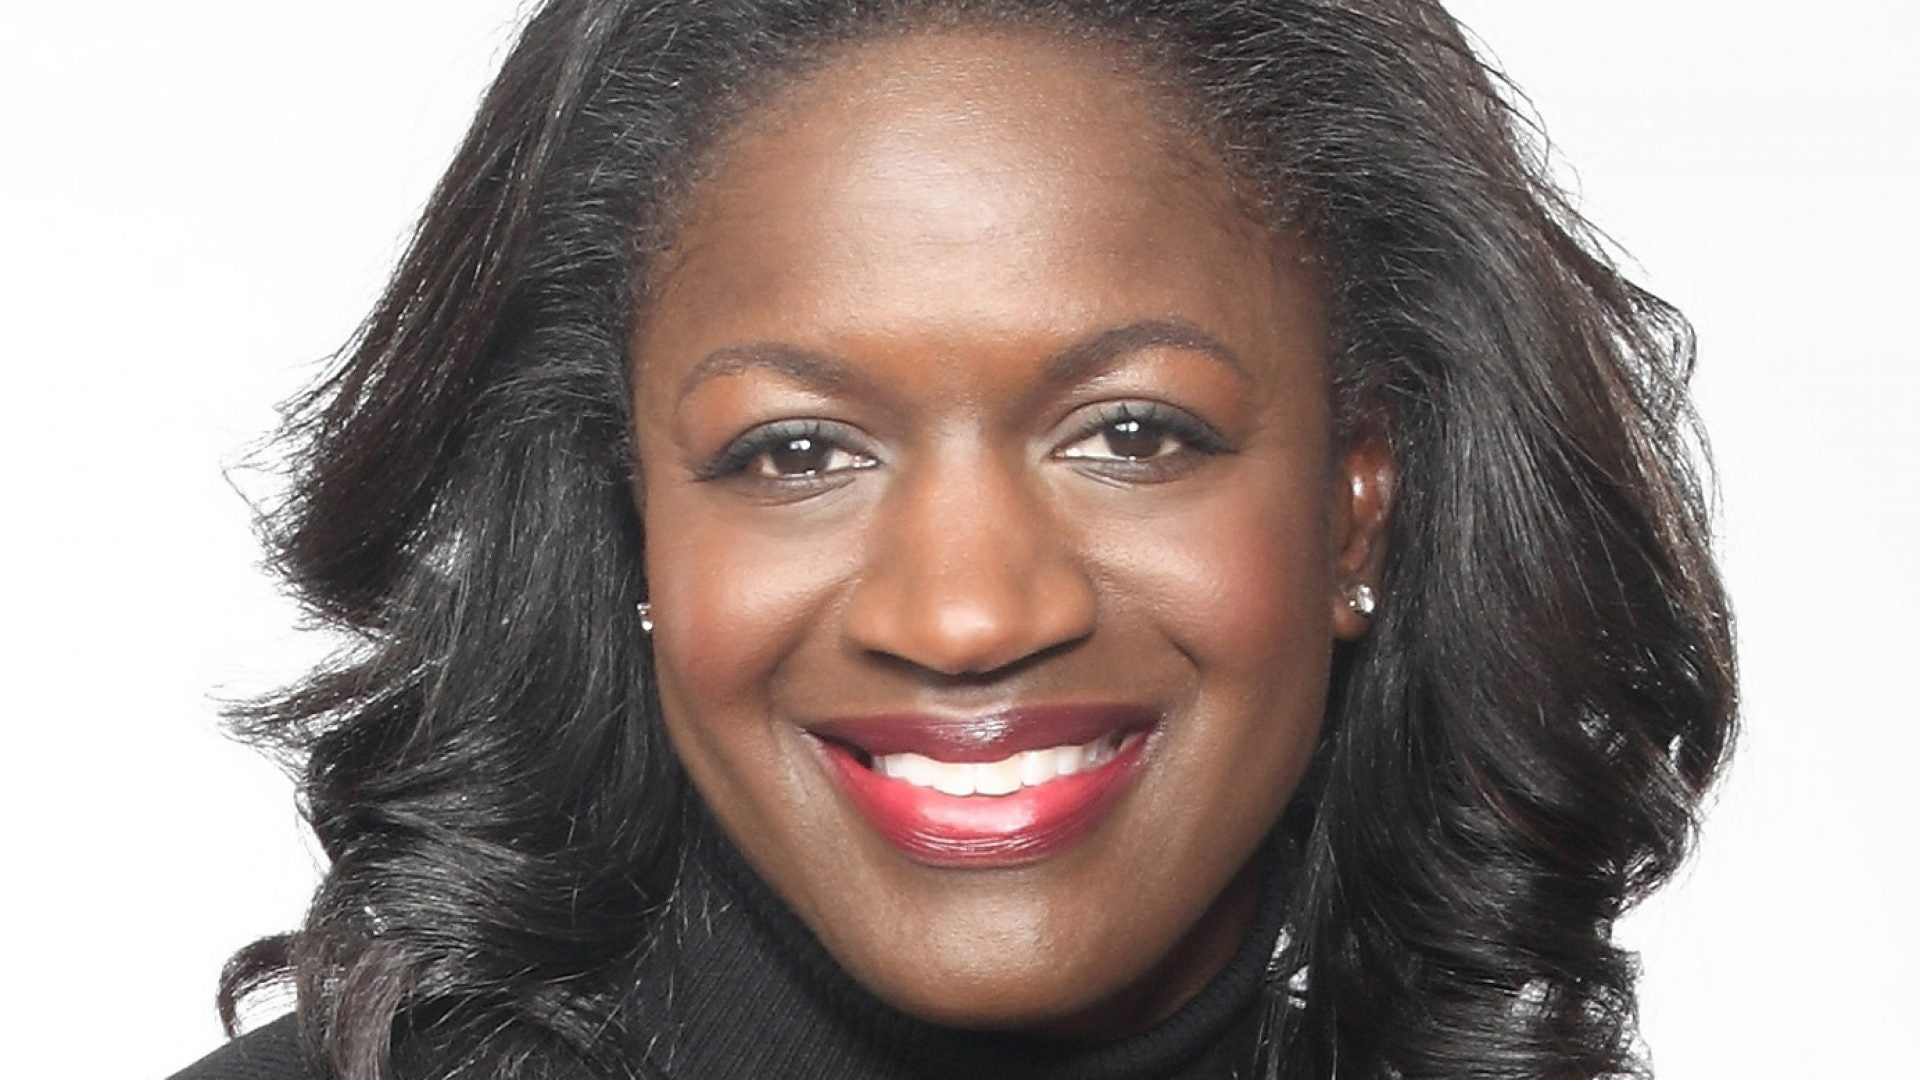 Richelle Parham On How To Build A Legacy In Business